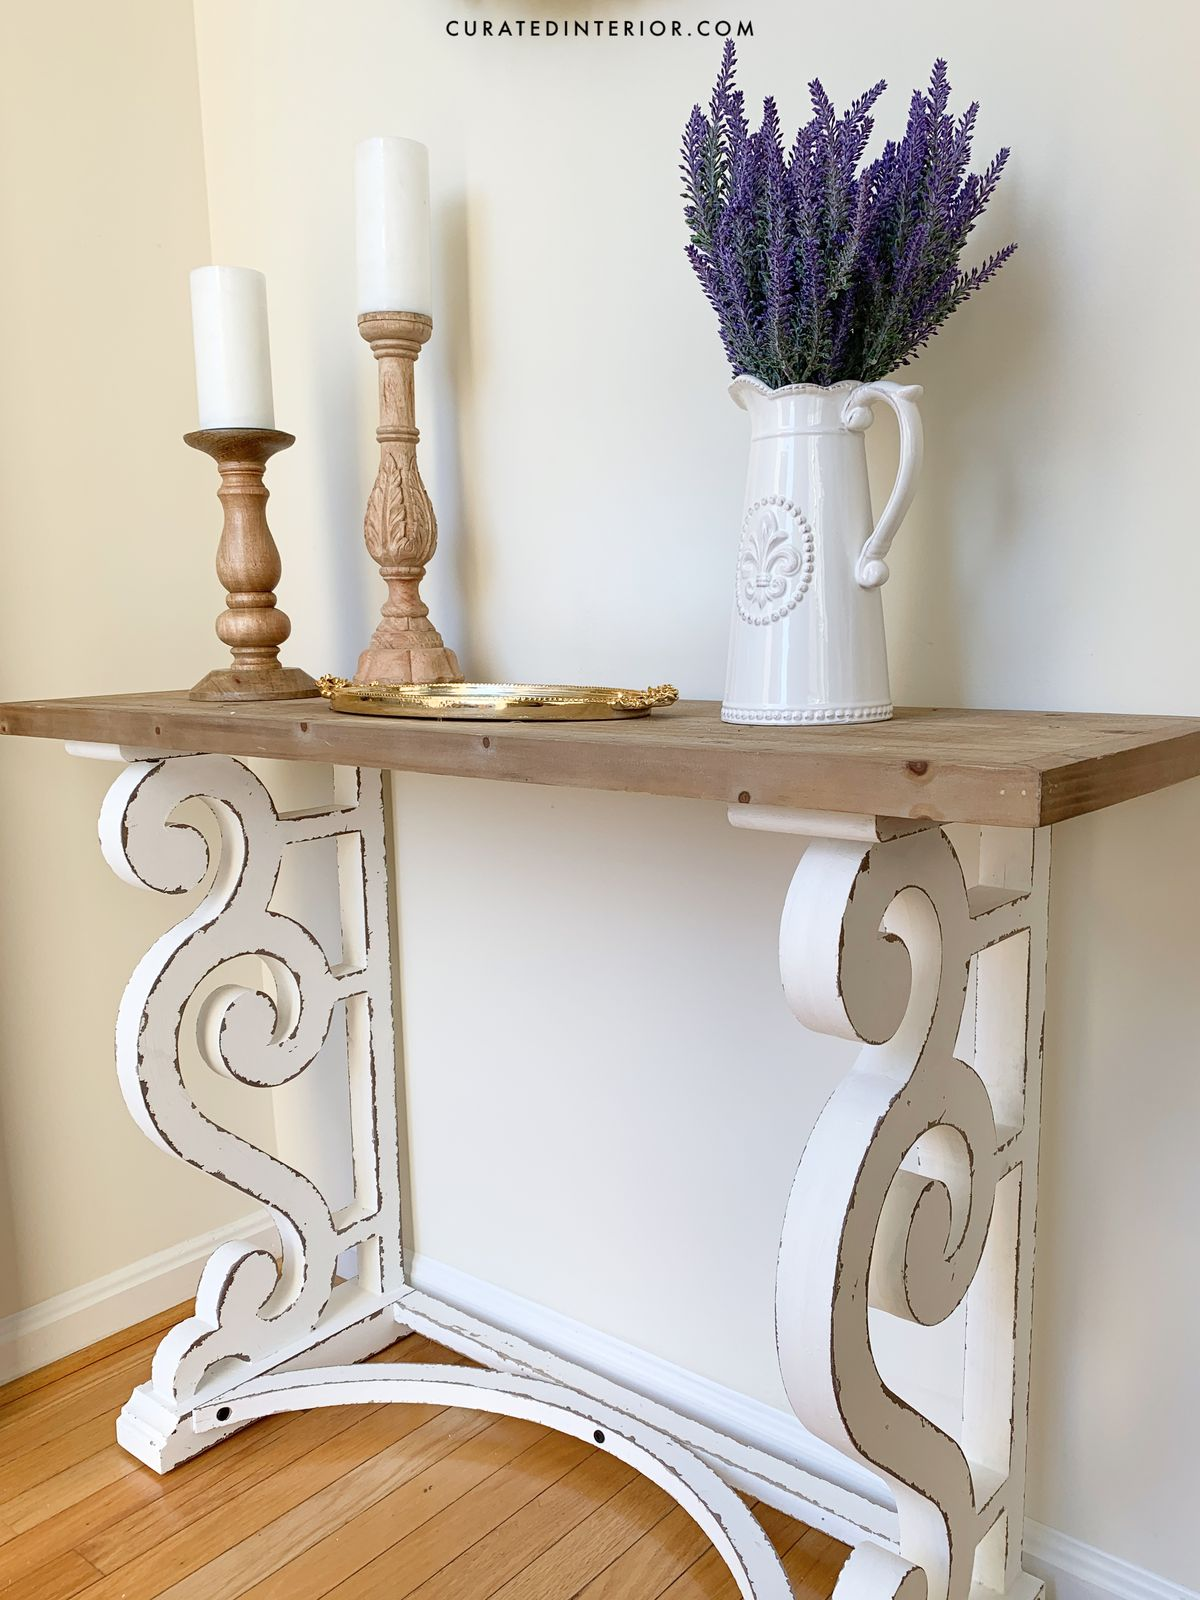 French Country Entryway with Rustic Wood Console Table Perfect for a French Farmhouse or French Country House